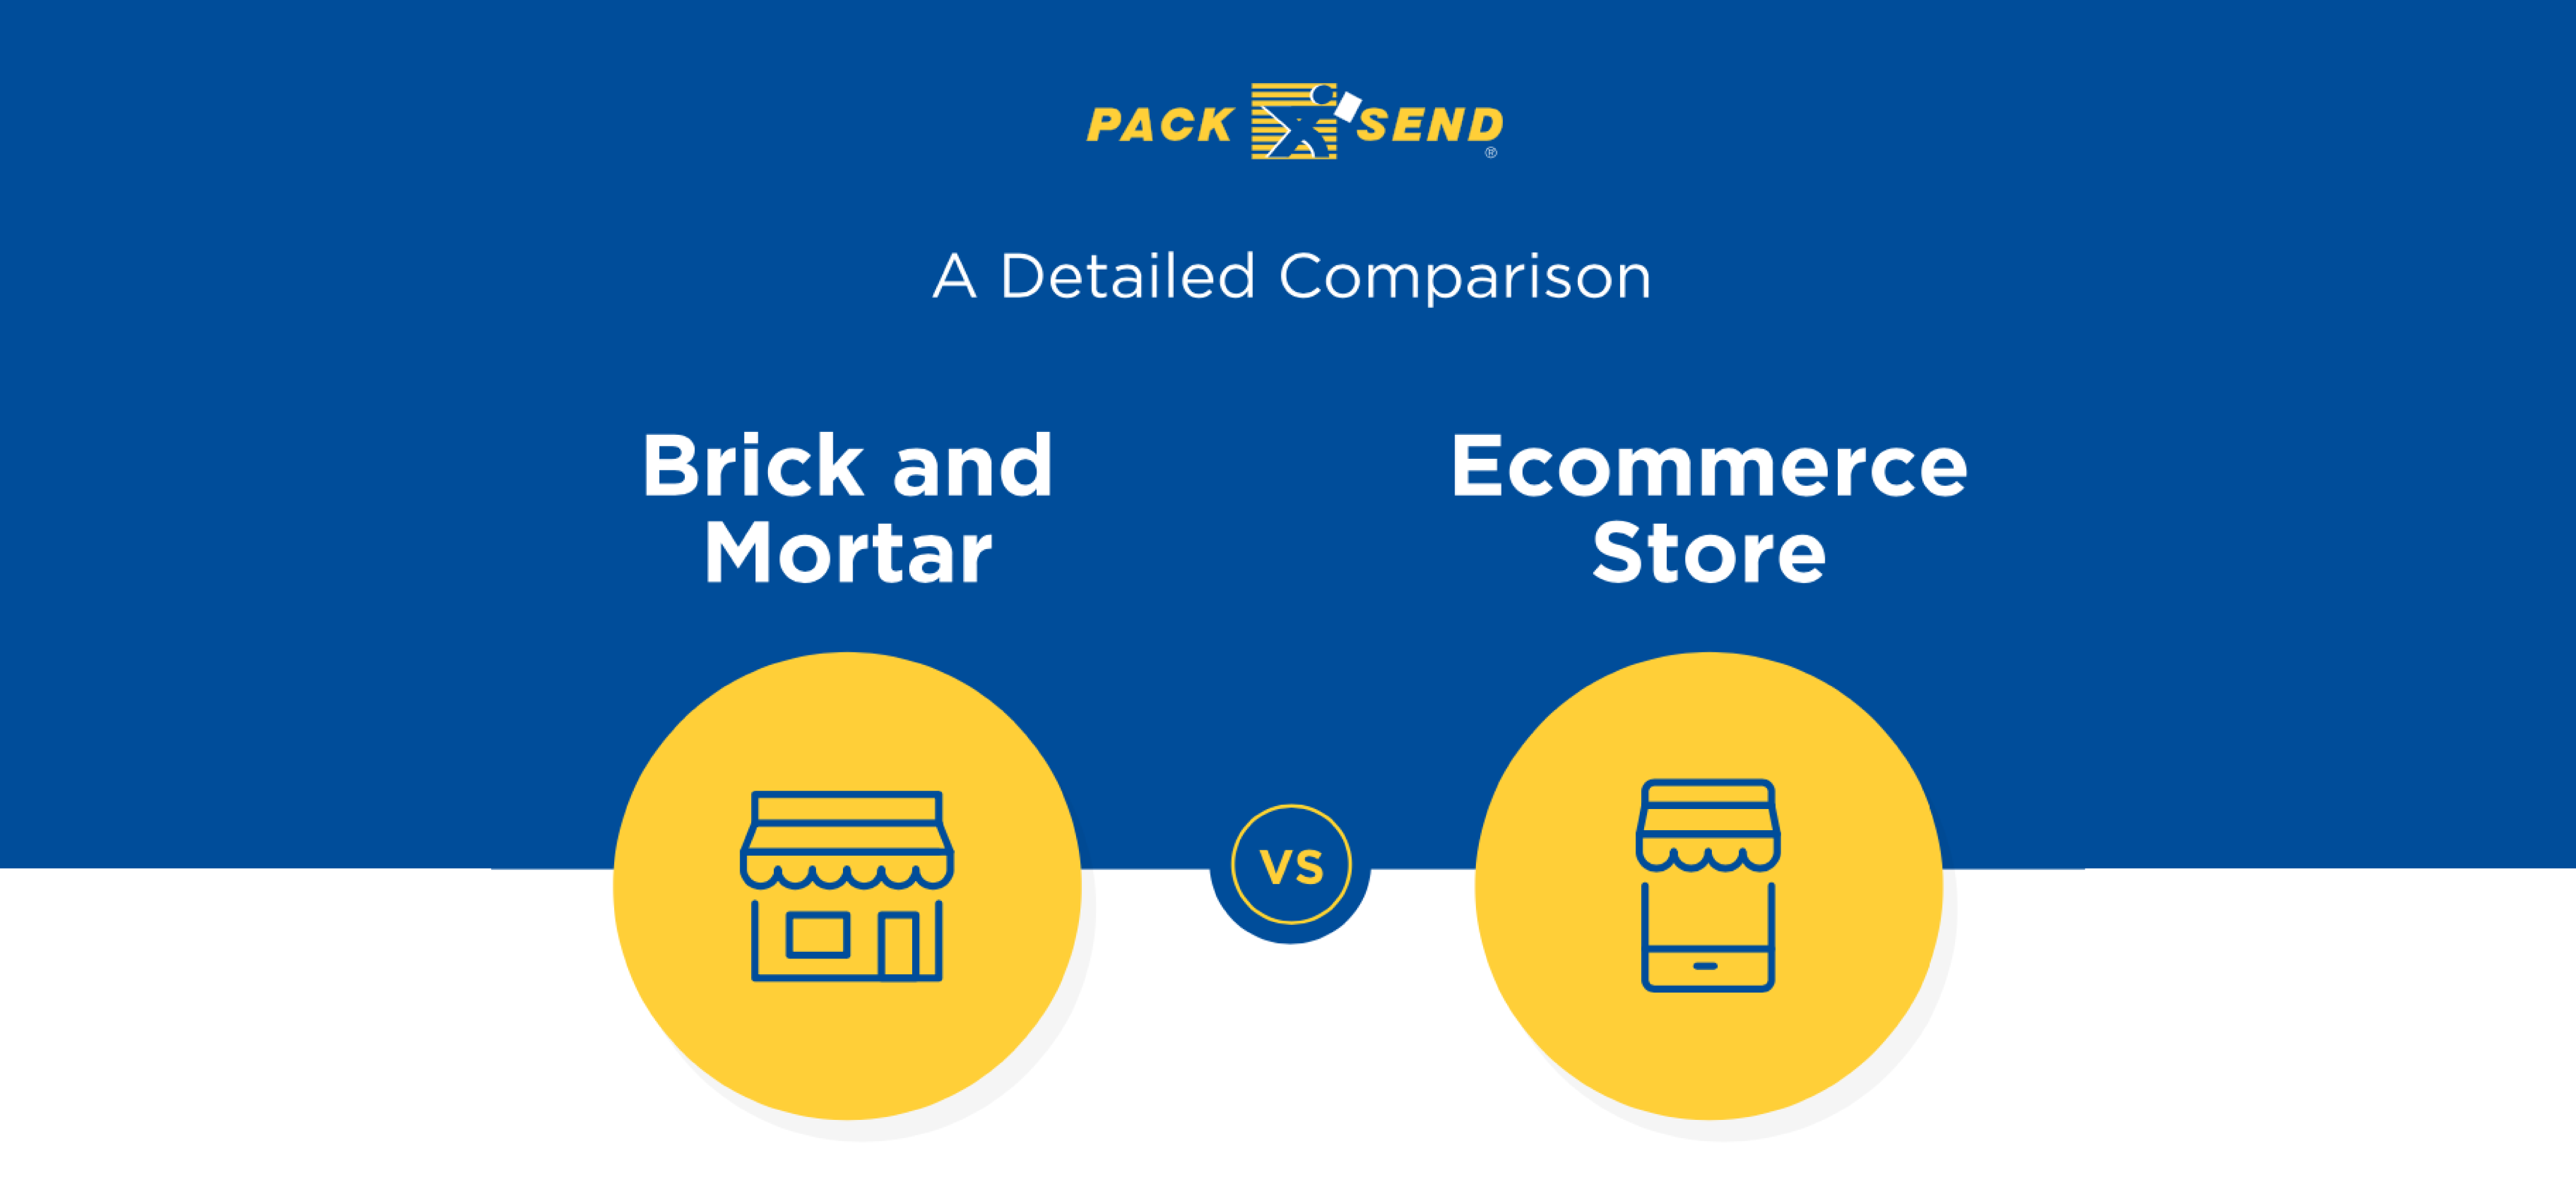 Brick and Mortar vs Ecommerce Stores - A Detailed Comparison